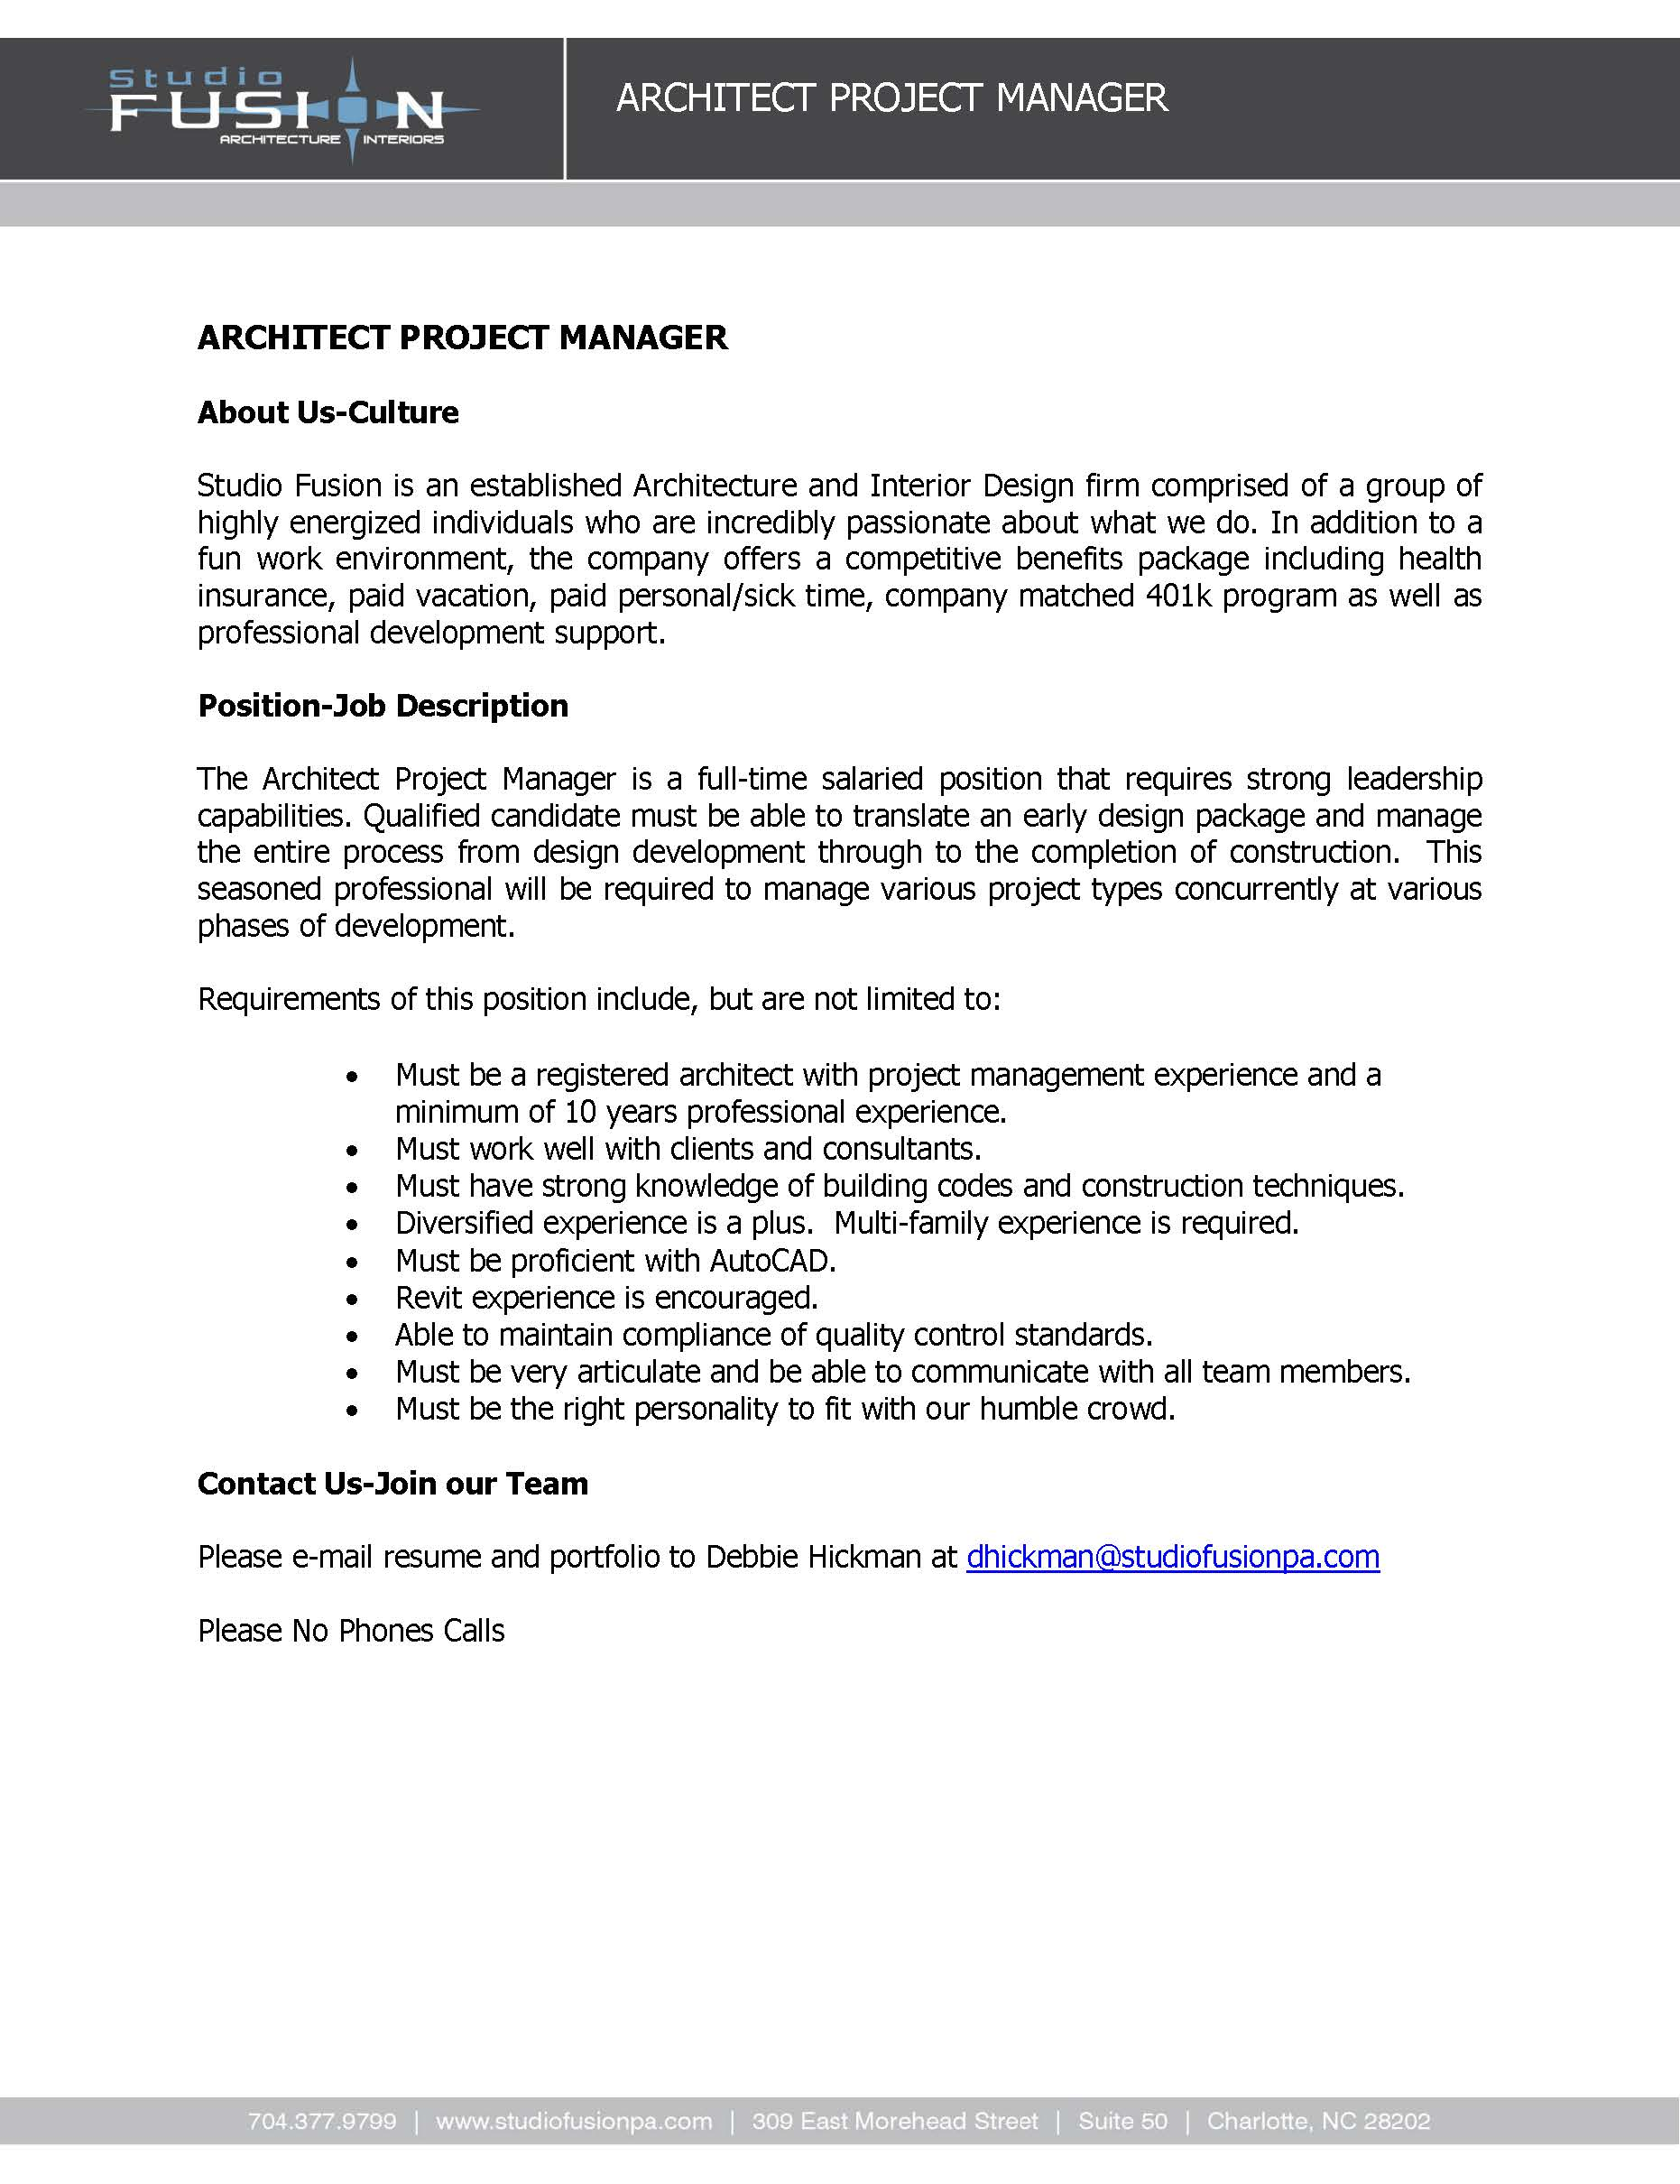 job description architect project manager